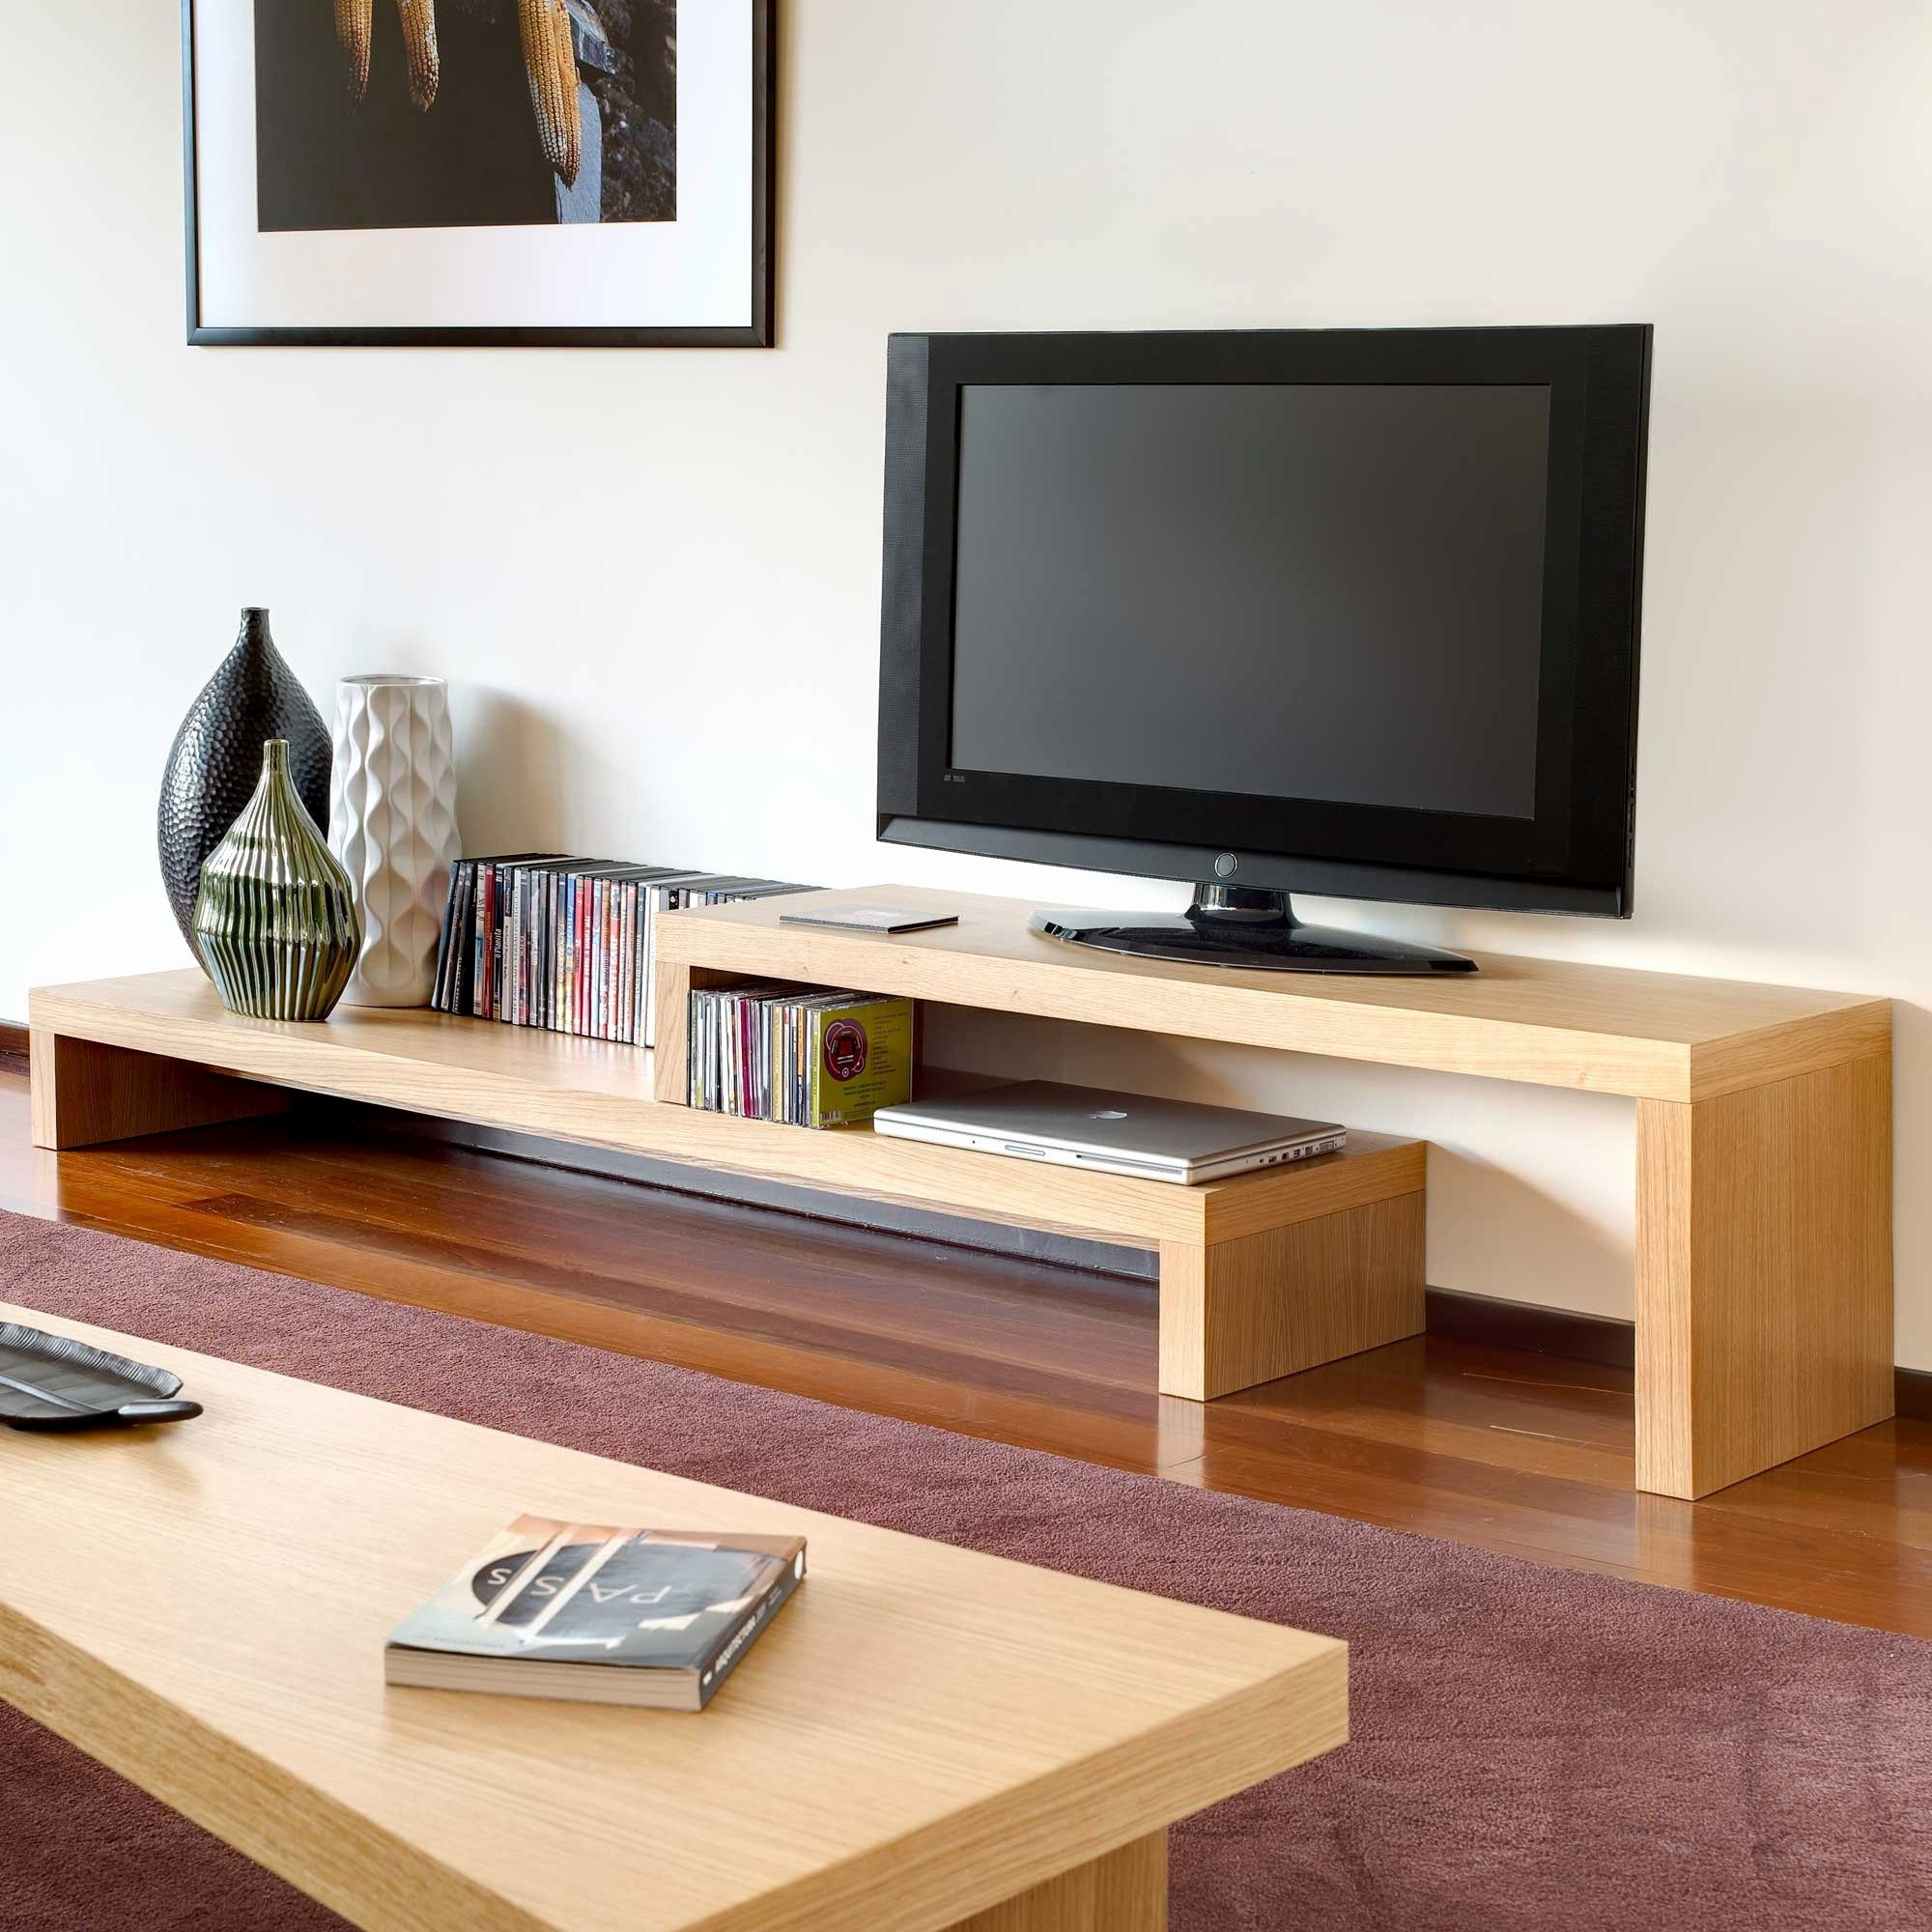 Television Chez Conforama Beau S Table Tele 4 Meuble Fly Tv Stand Shelves Wooden Tv Stands Living Room Tv